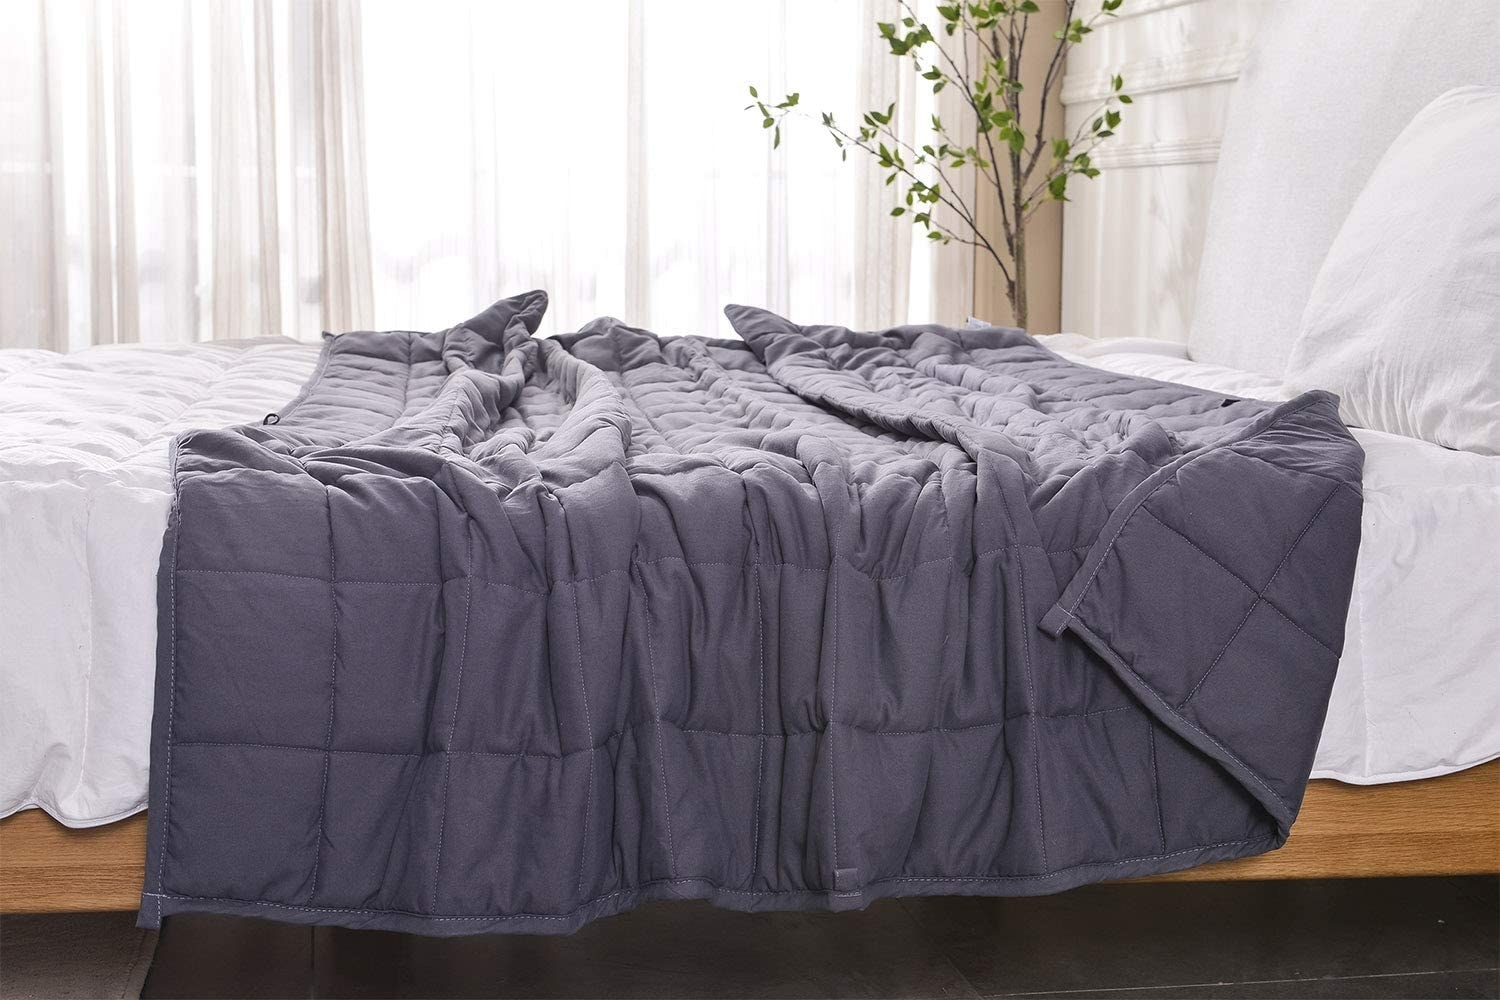 the AN cooling weighted blanket draped loosely on a bed with white sheets